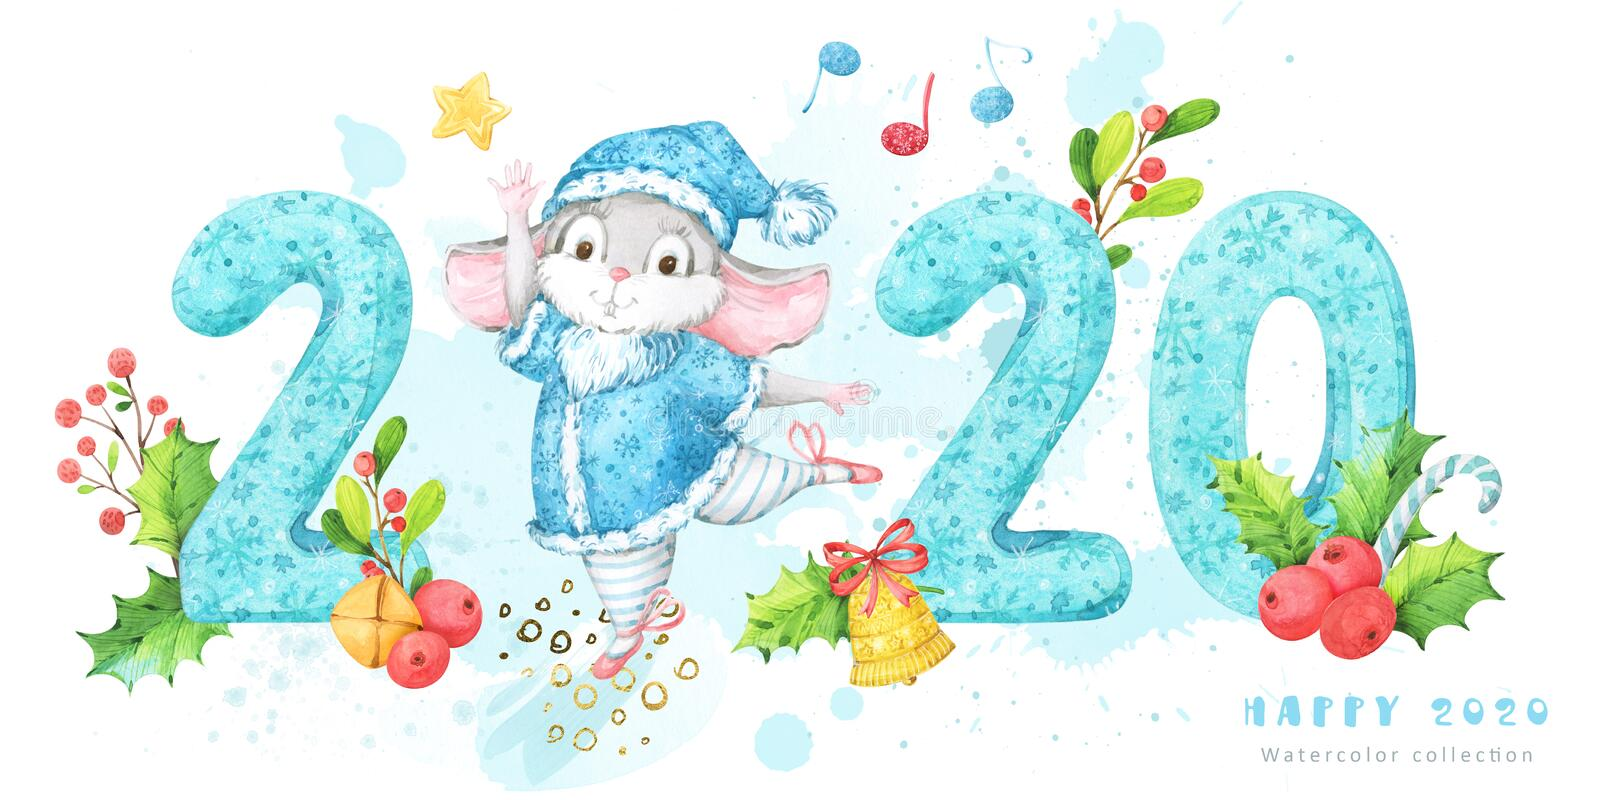 2020 New Year and Christmas banner with hand painted watercolor turquoise numbers with snowflakes pattern and a cute dancing mouse royalty free illustration